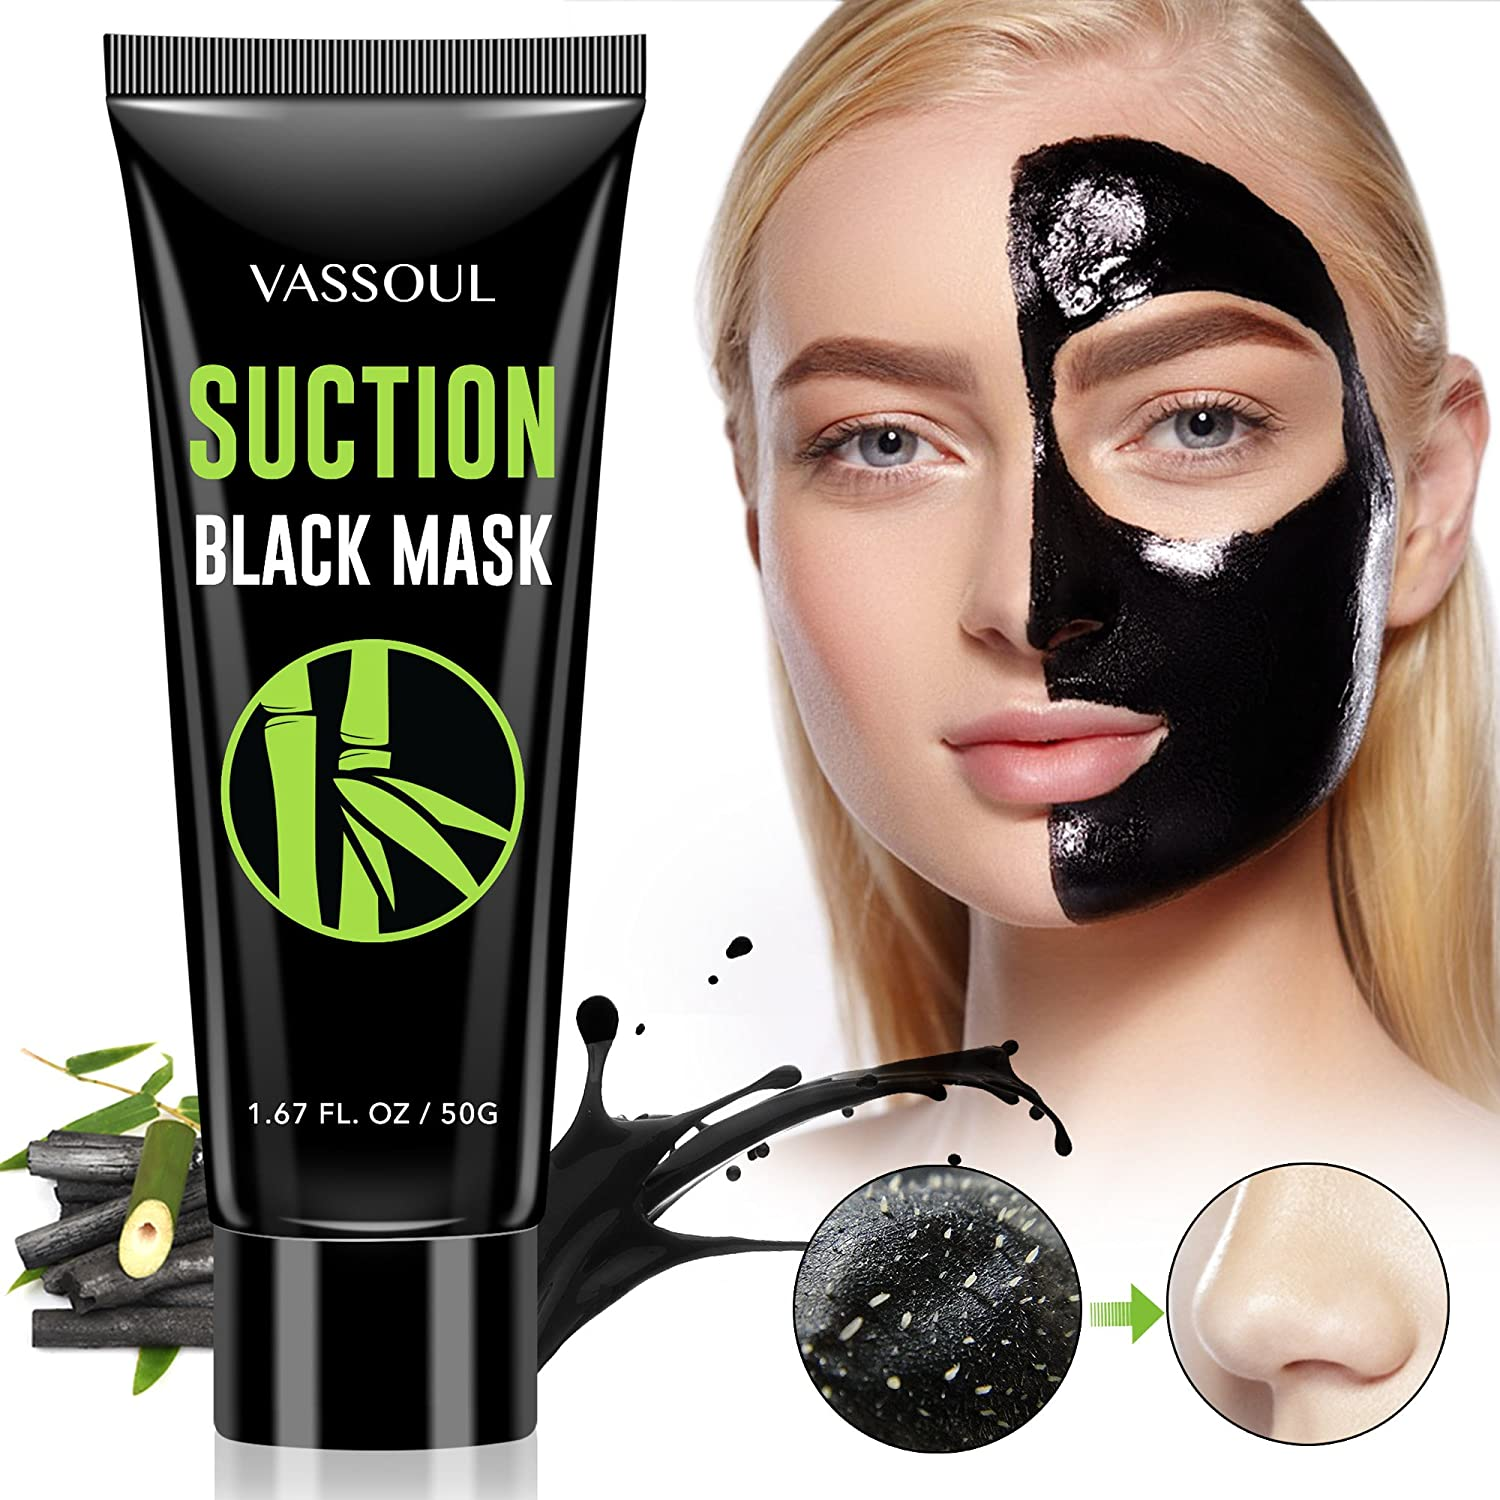 Vassoul Blackhead Remover Mask, Purifying Peel-off Mask with Activated Charcoal, Deep Pore Cleanse for Acne Anker AK-71AN3654WS-WA